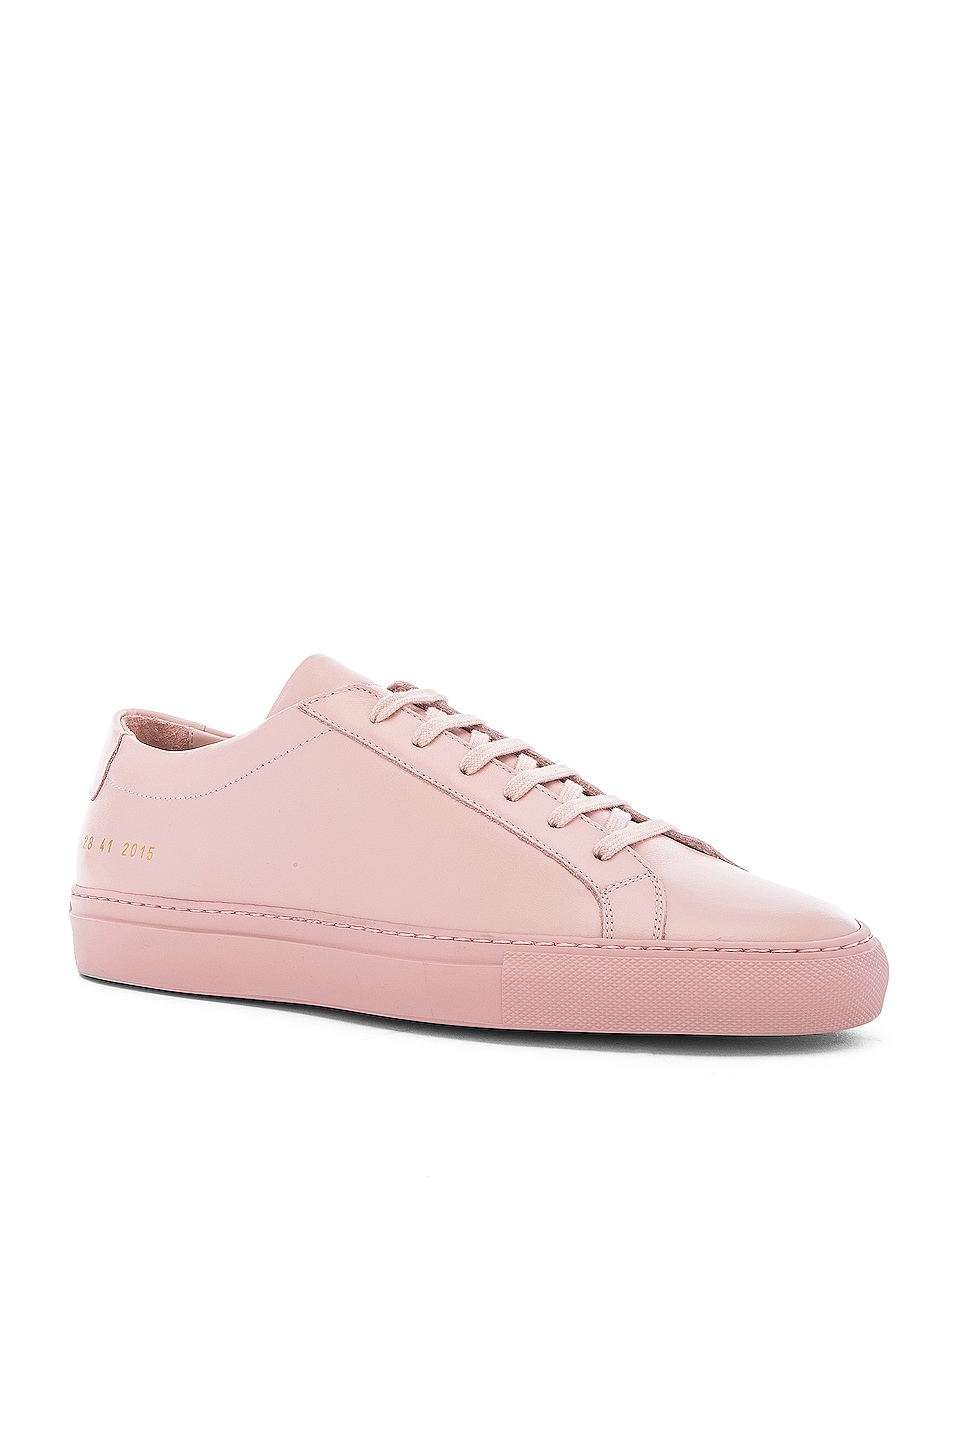 Common Projects Original Leather Achilles Low en Blush